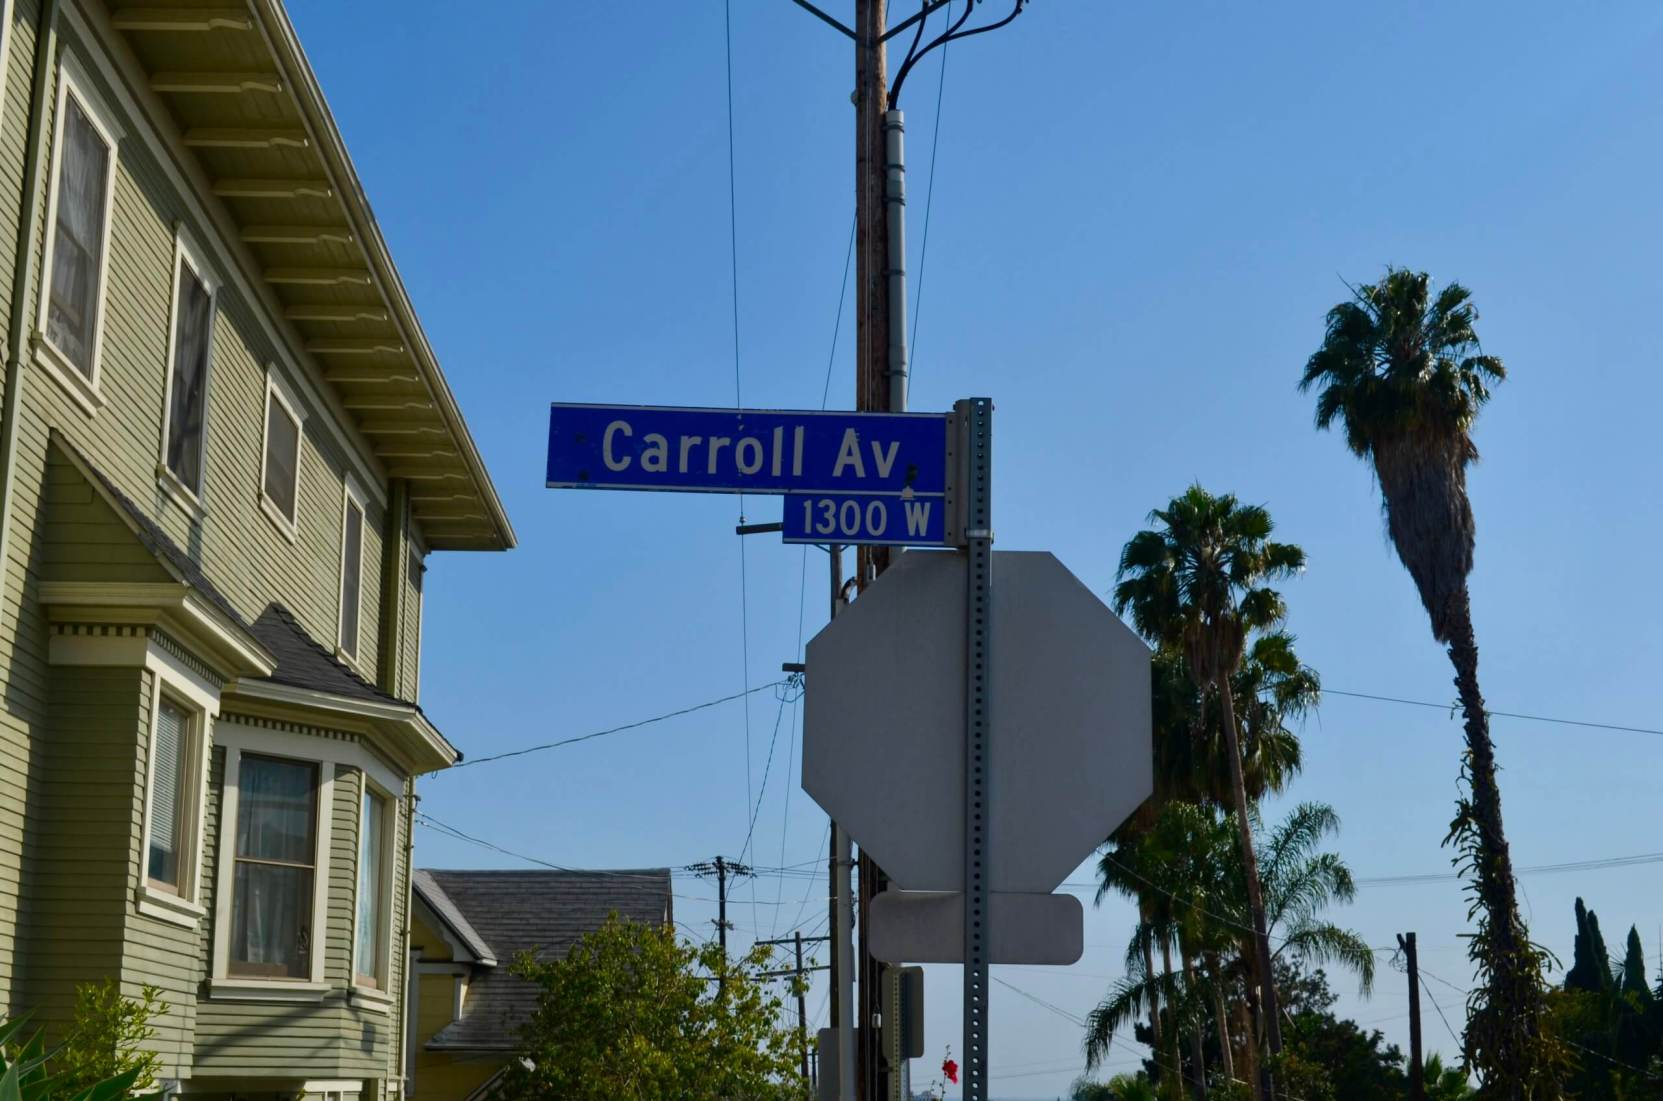 Carroll Avenue